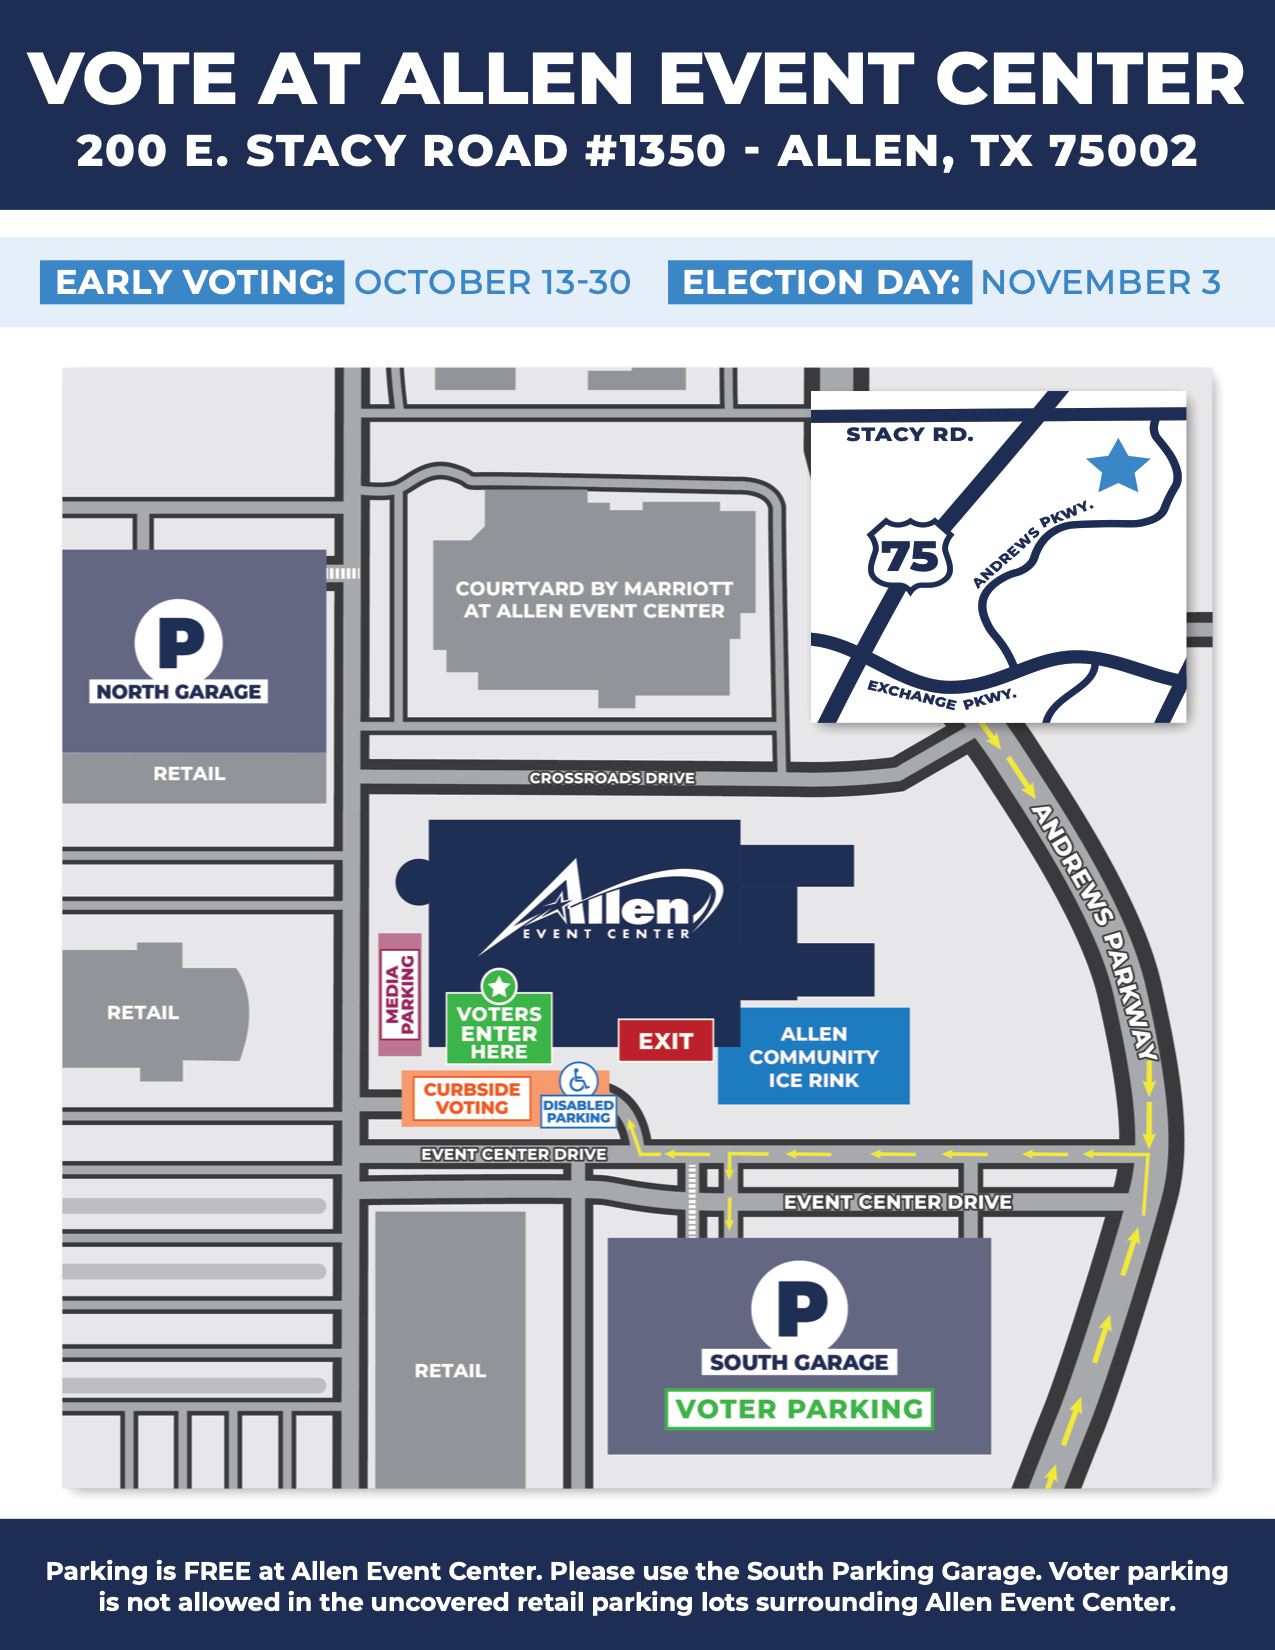 Allen Event Center - Parking Map (Elections 2020)